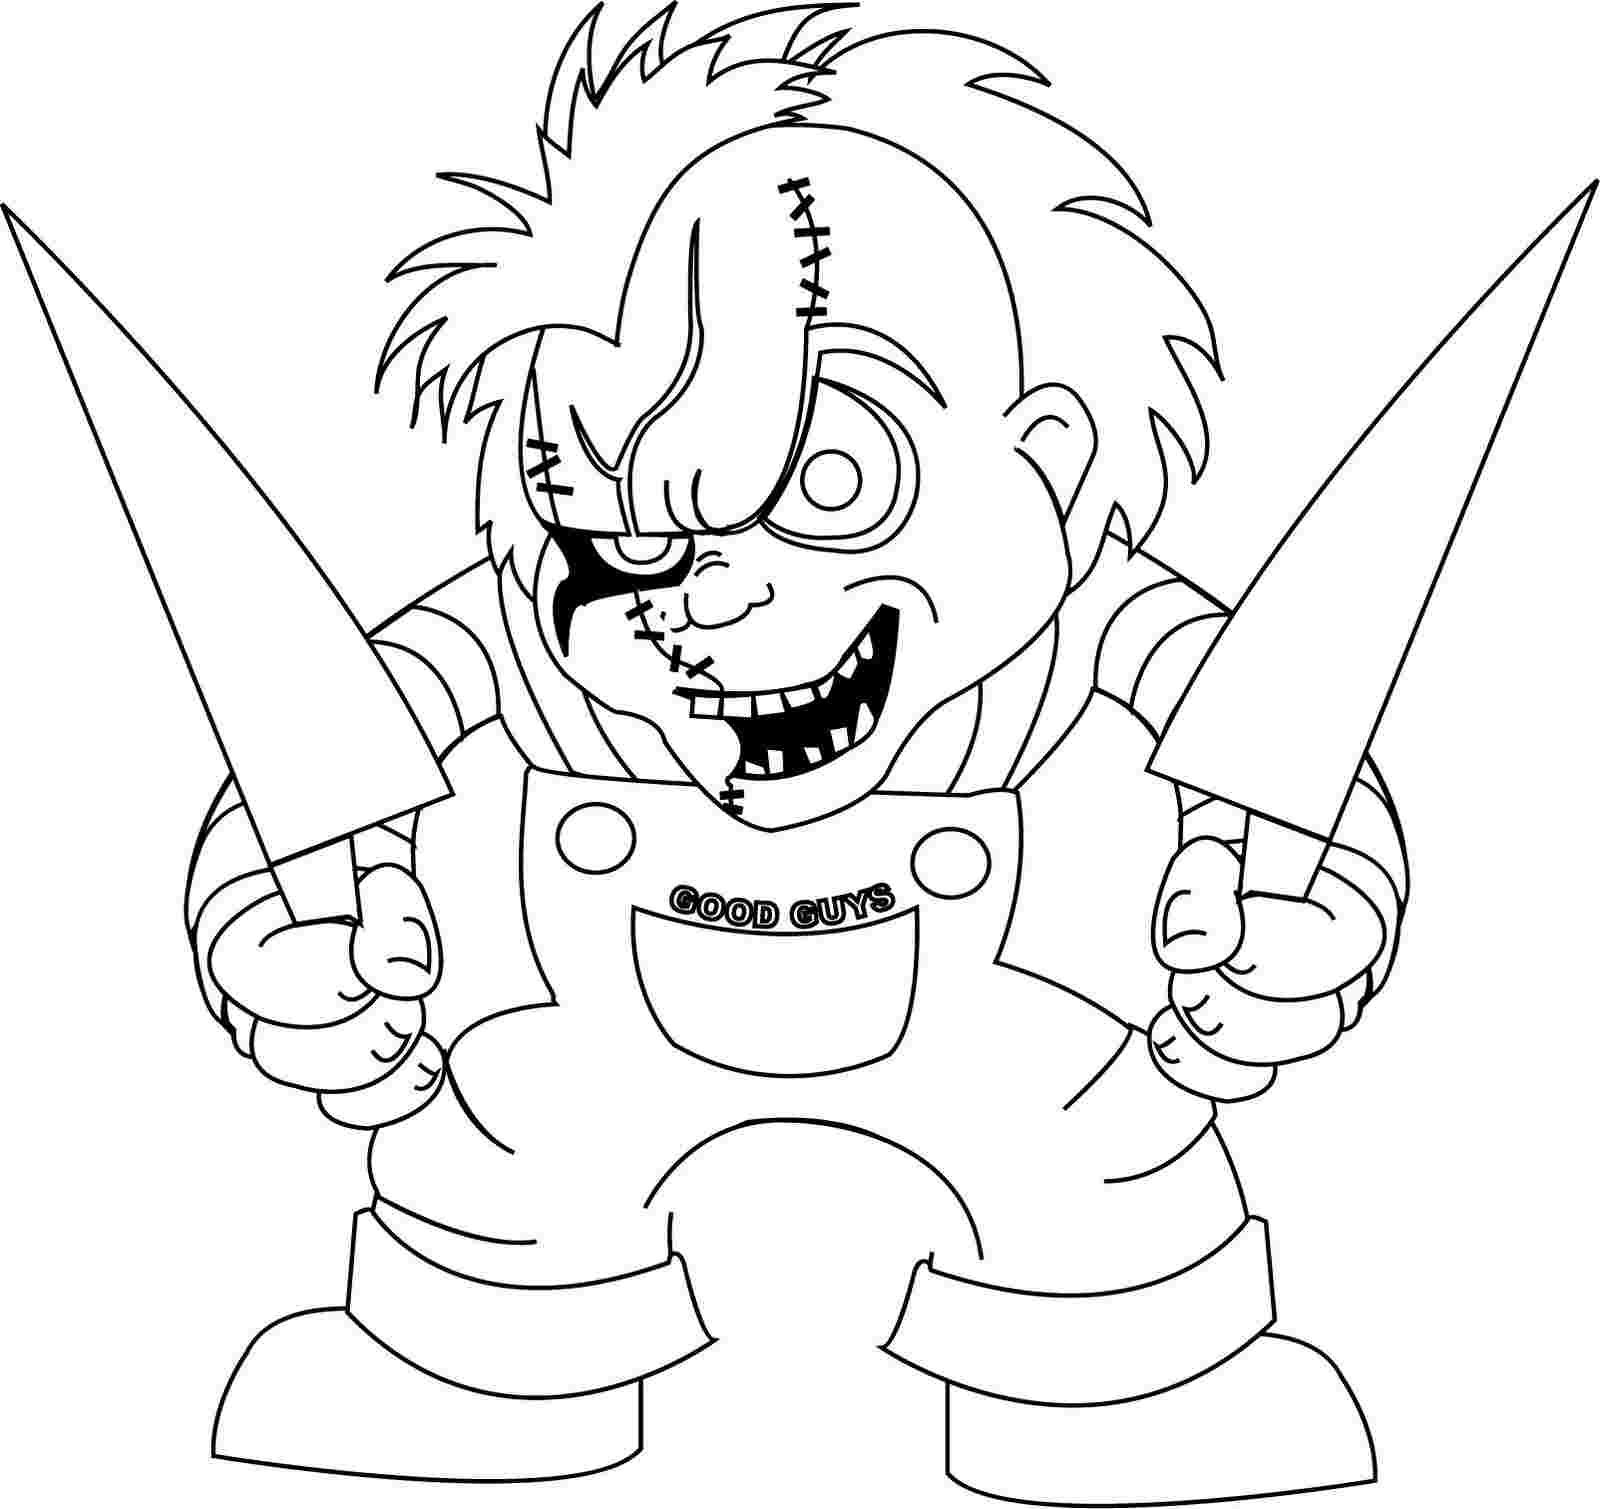 Coloring Festival Chucky Coloring Pages To Print More Than 100